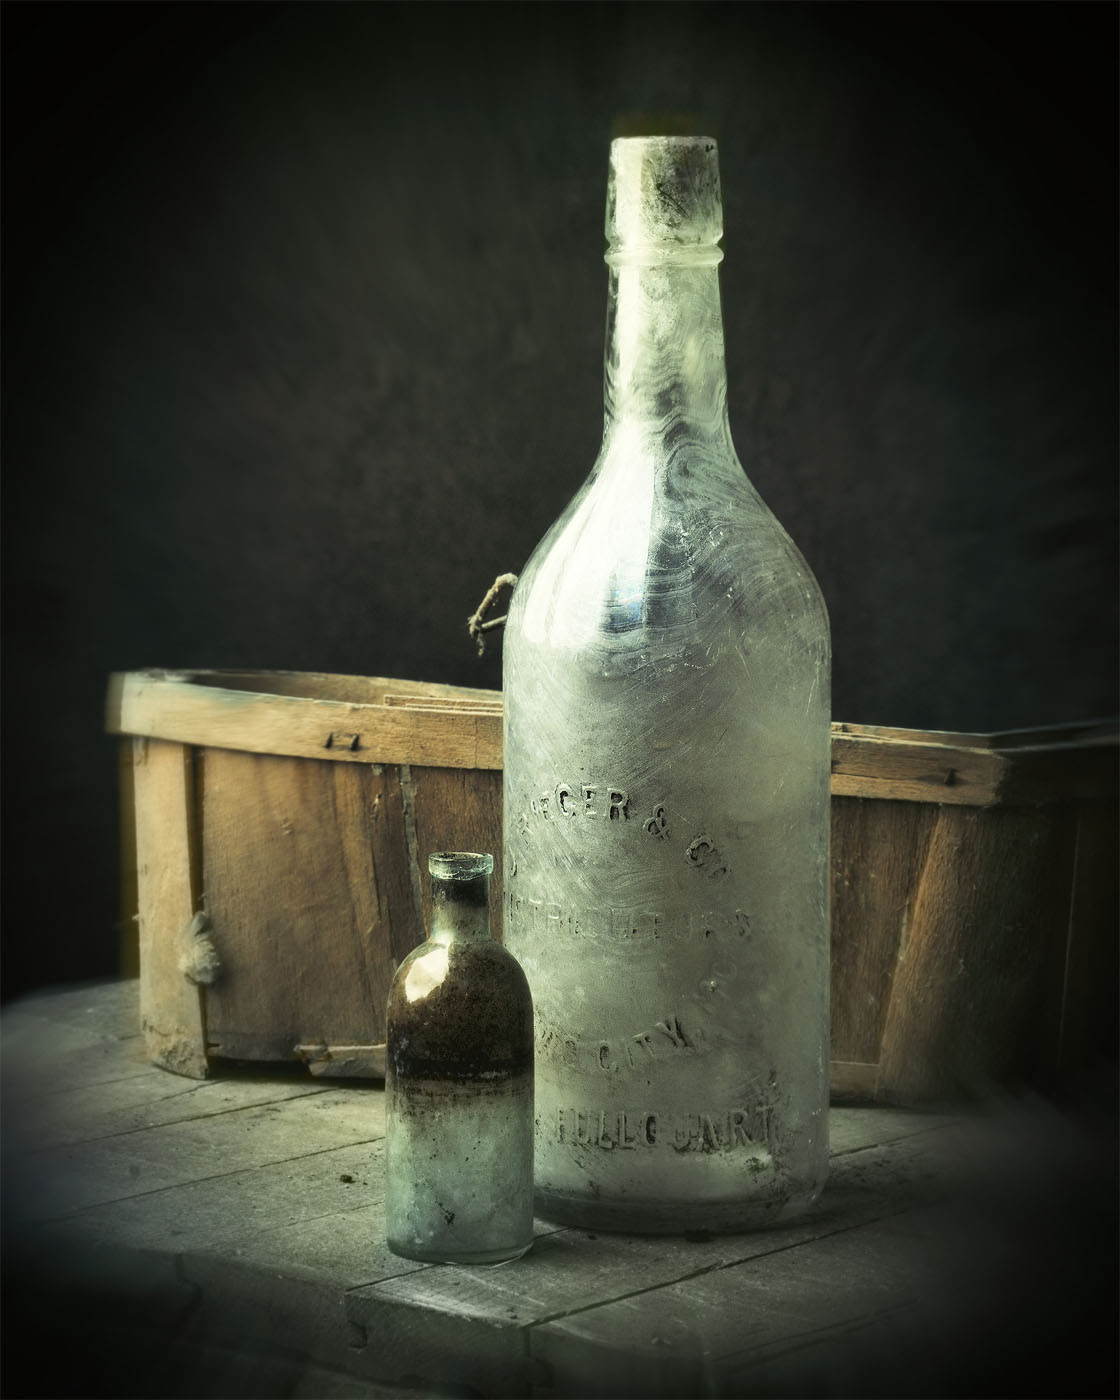 Items found in my studio crawlspace, an old basket and bottles